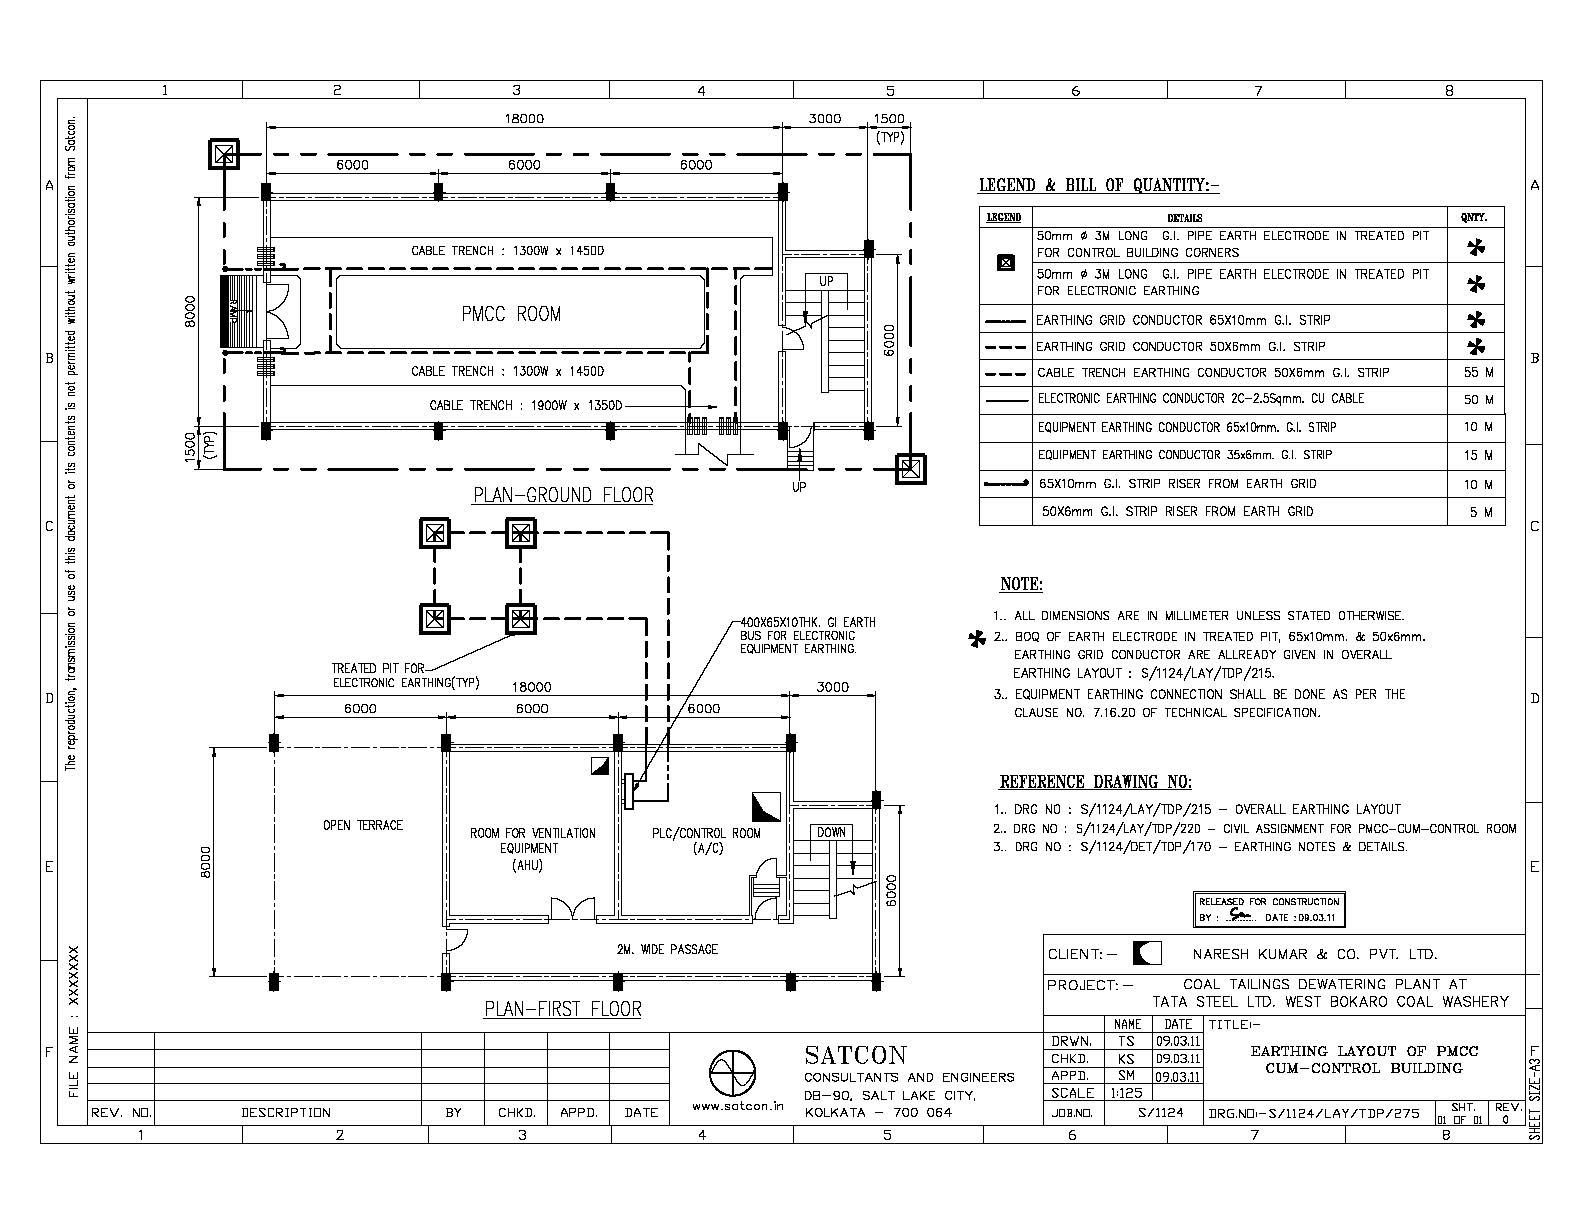 Earthing Calculation for Substations